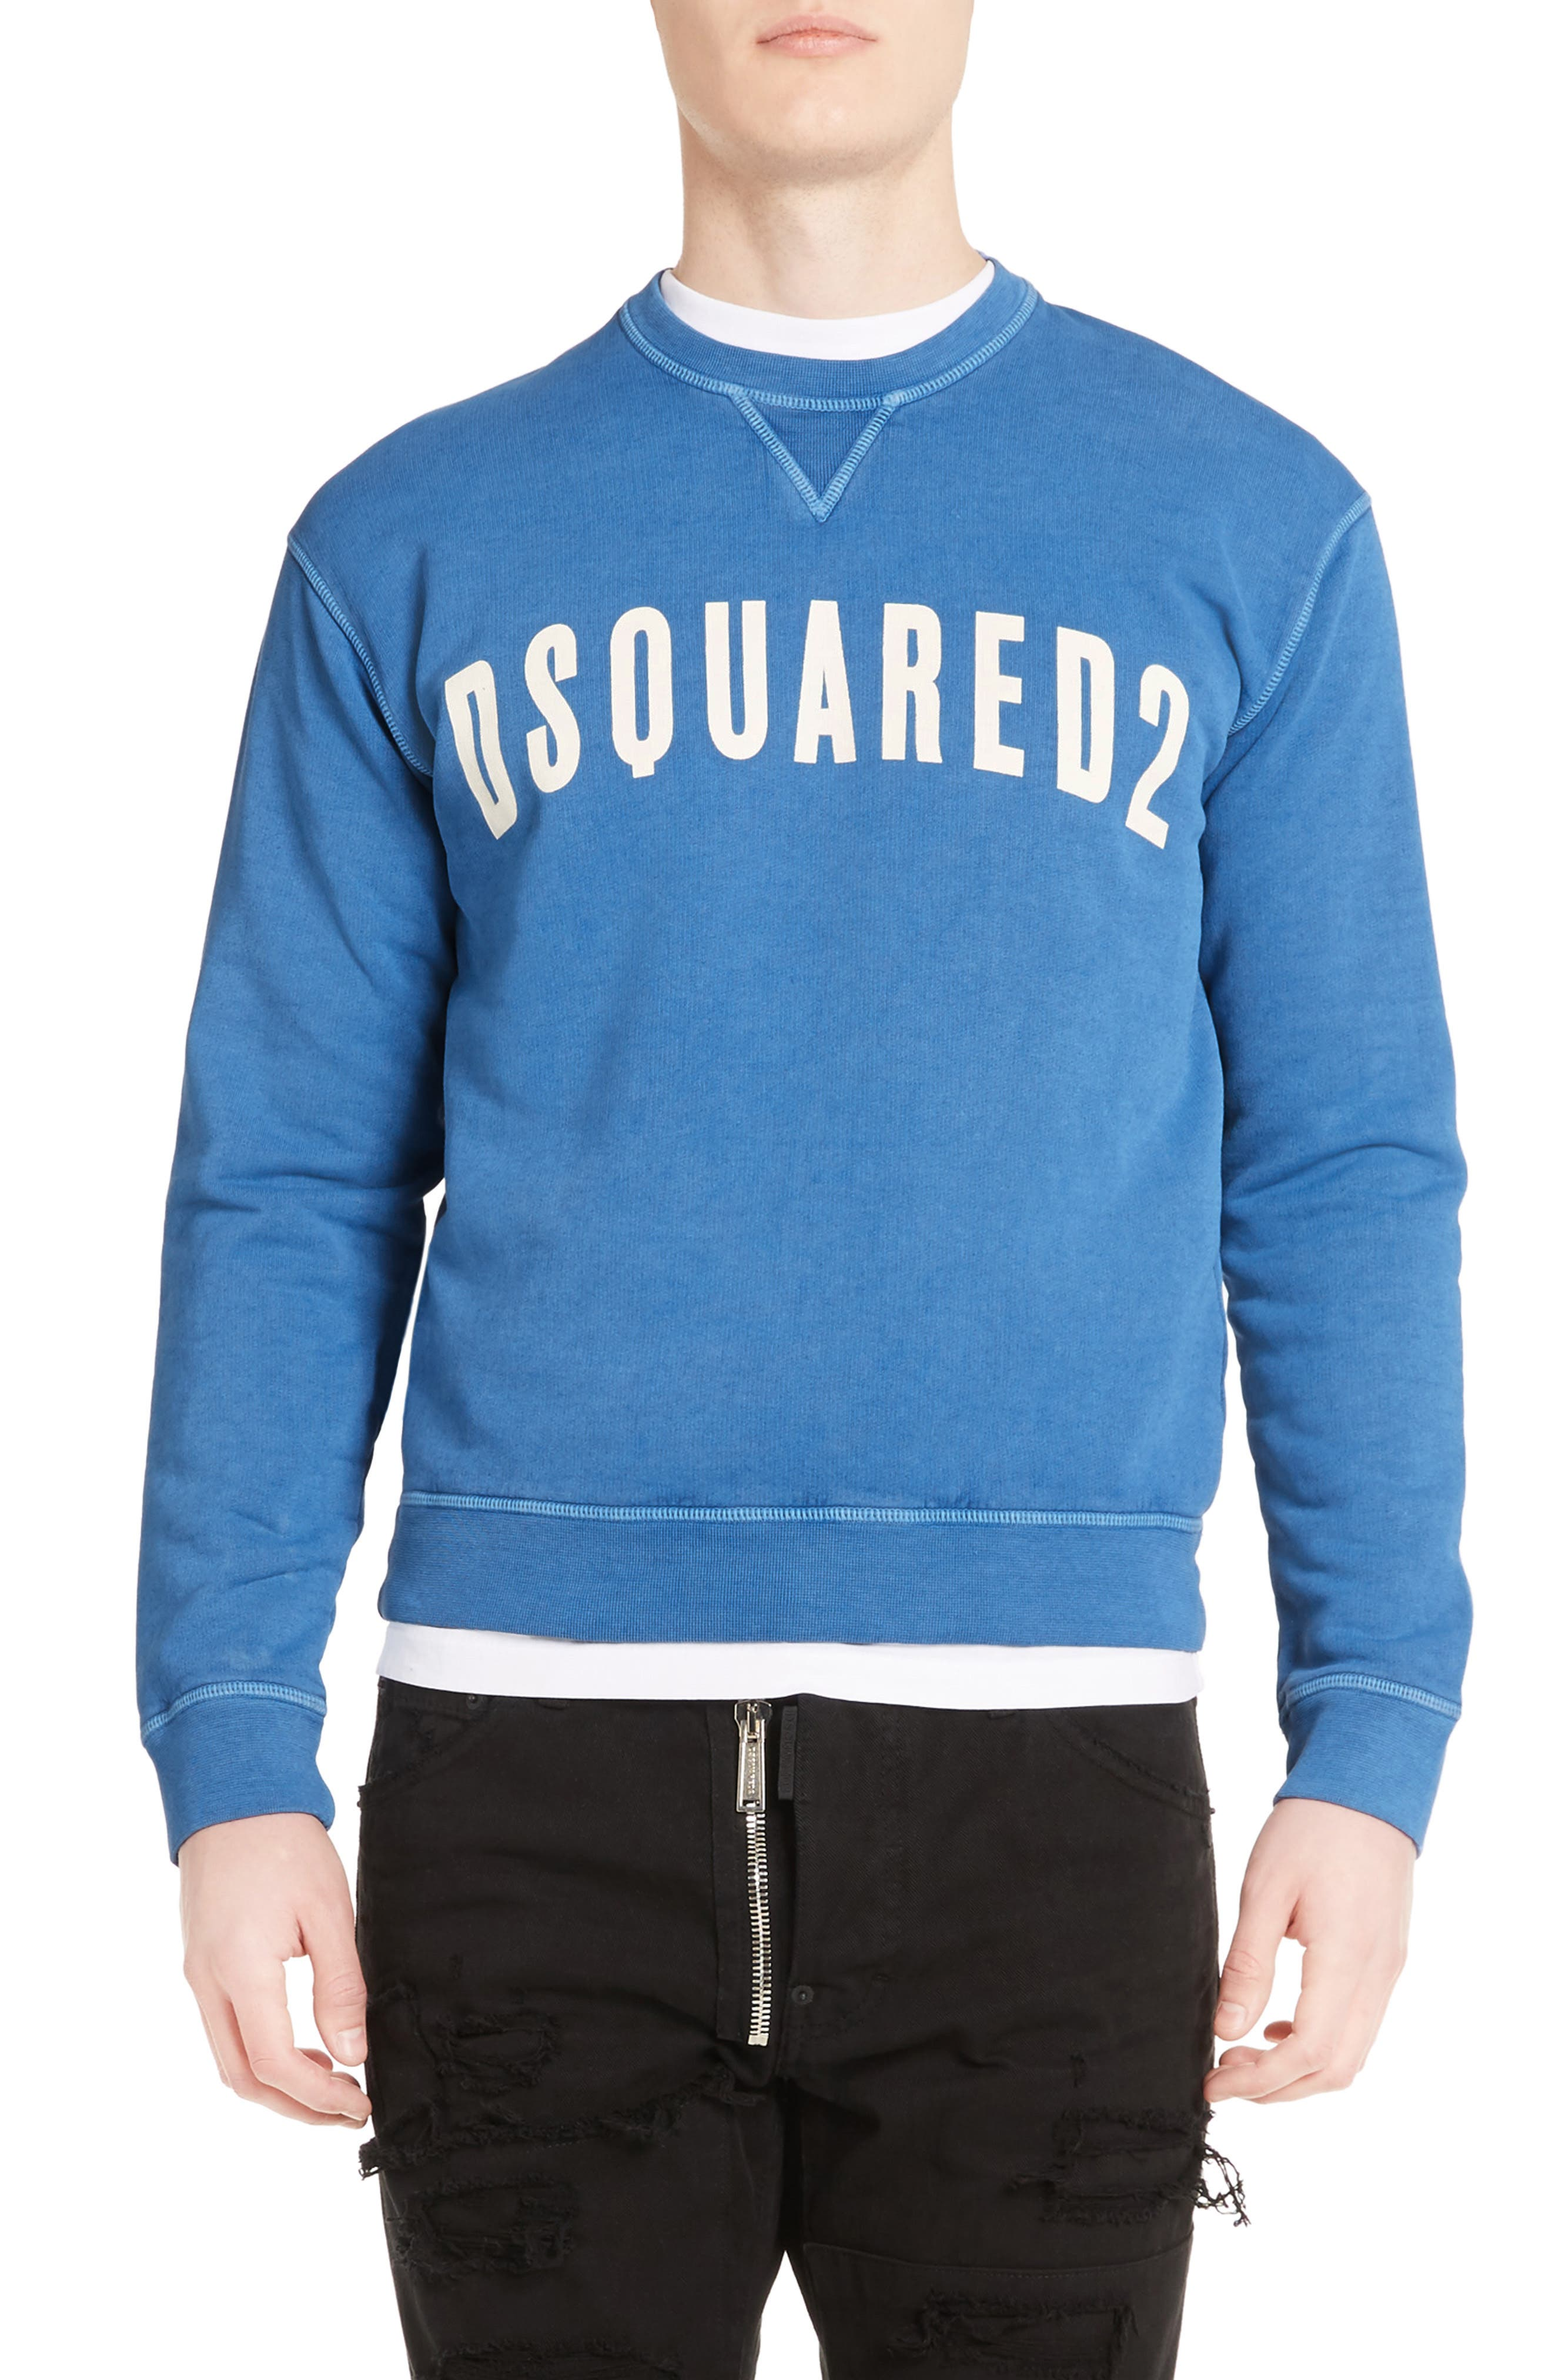 Alternate Image 1 Selected - Dsquared2 Logo Sweatshirt